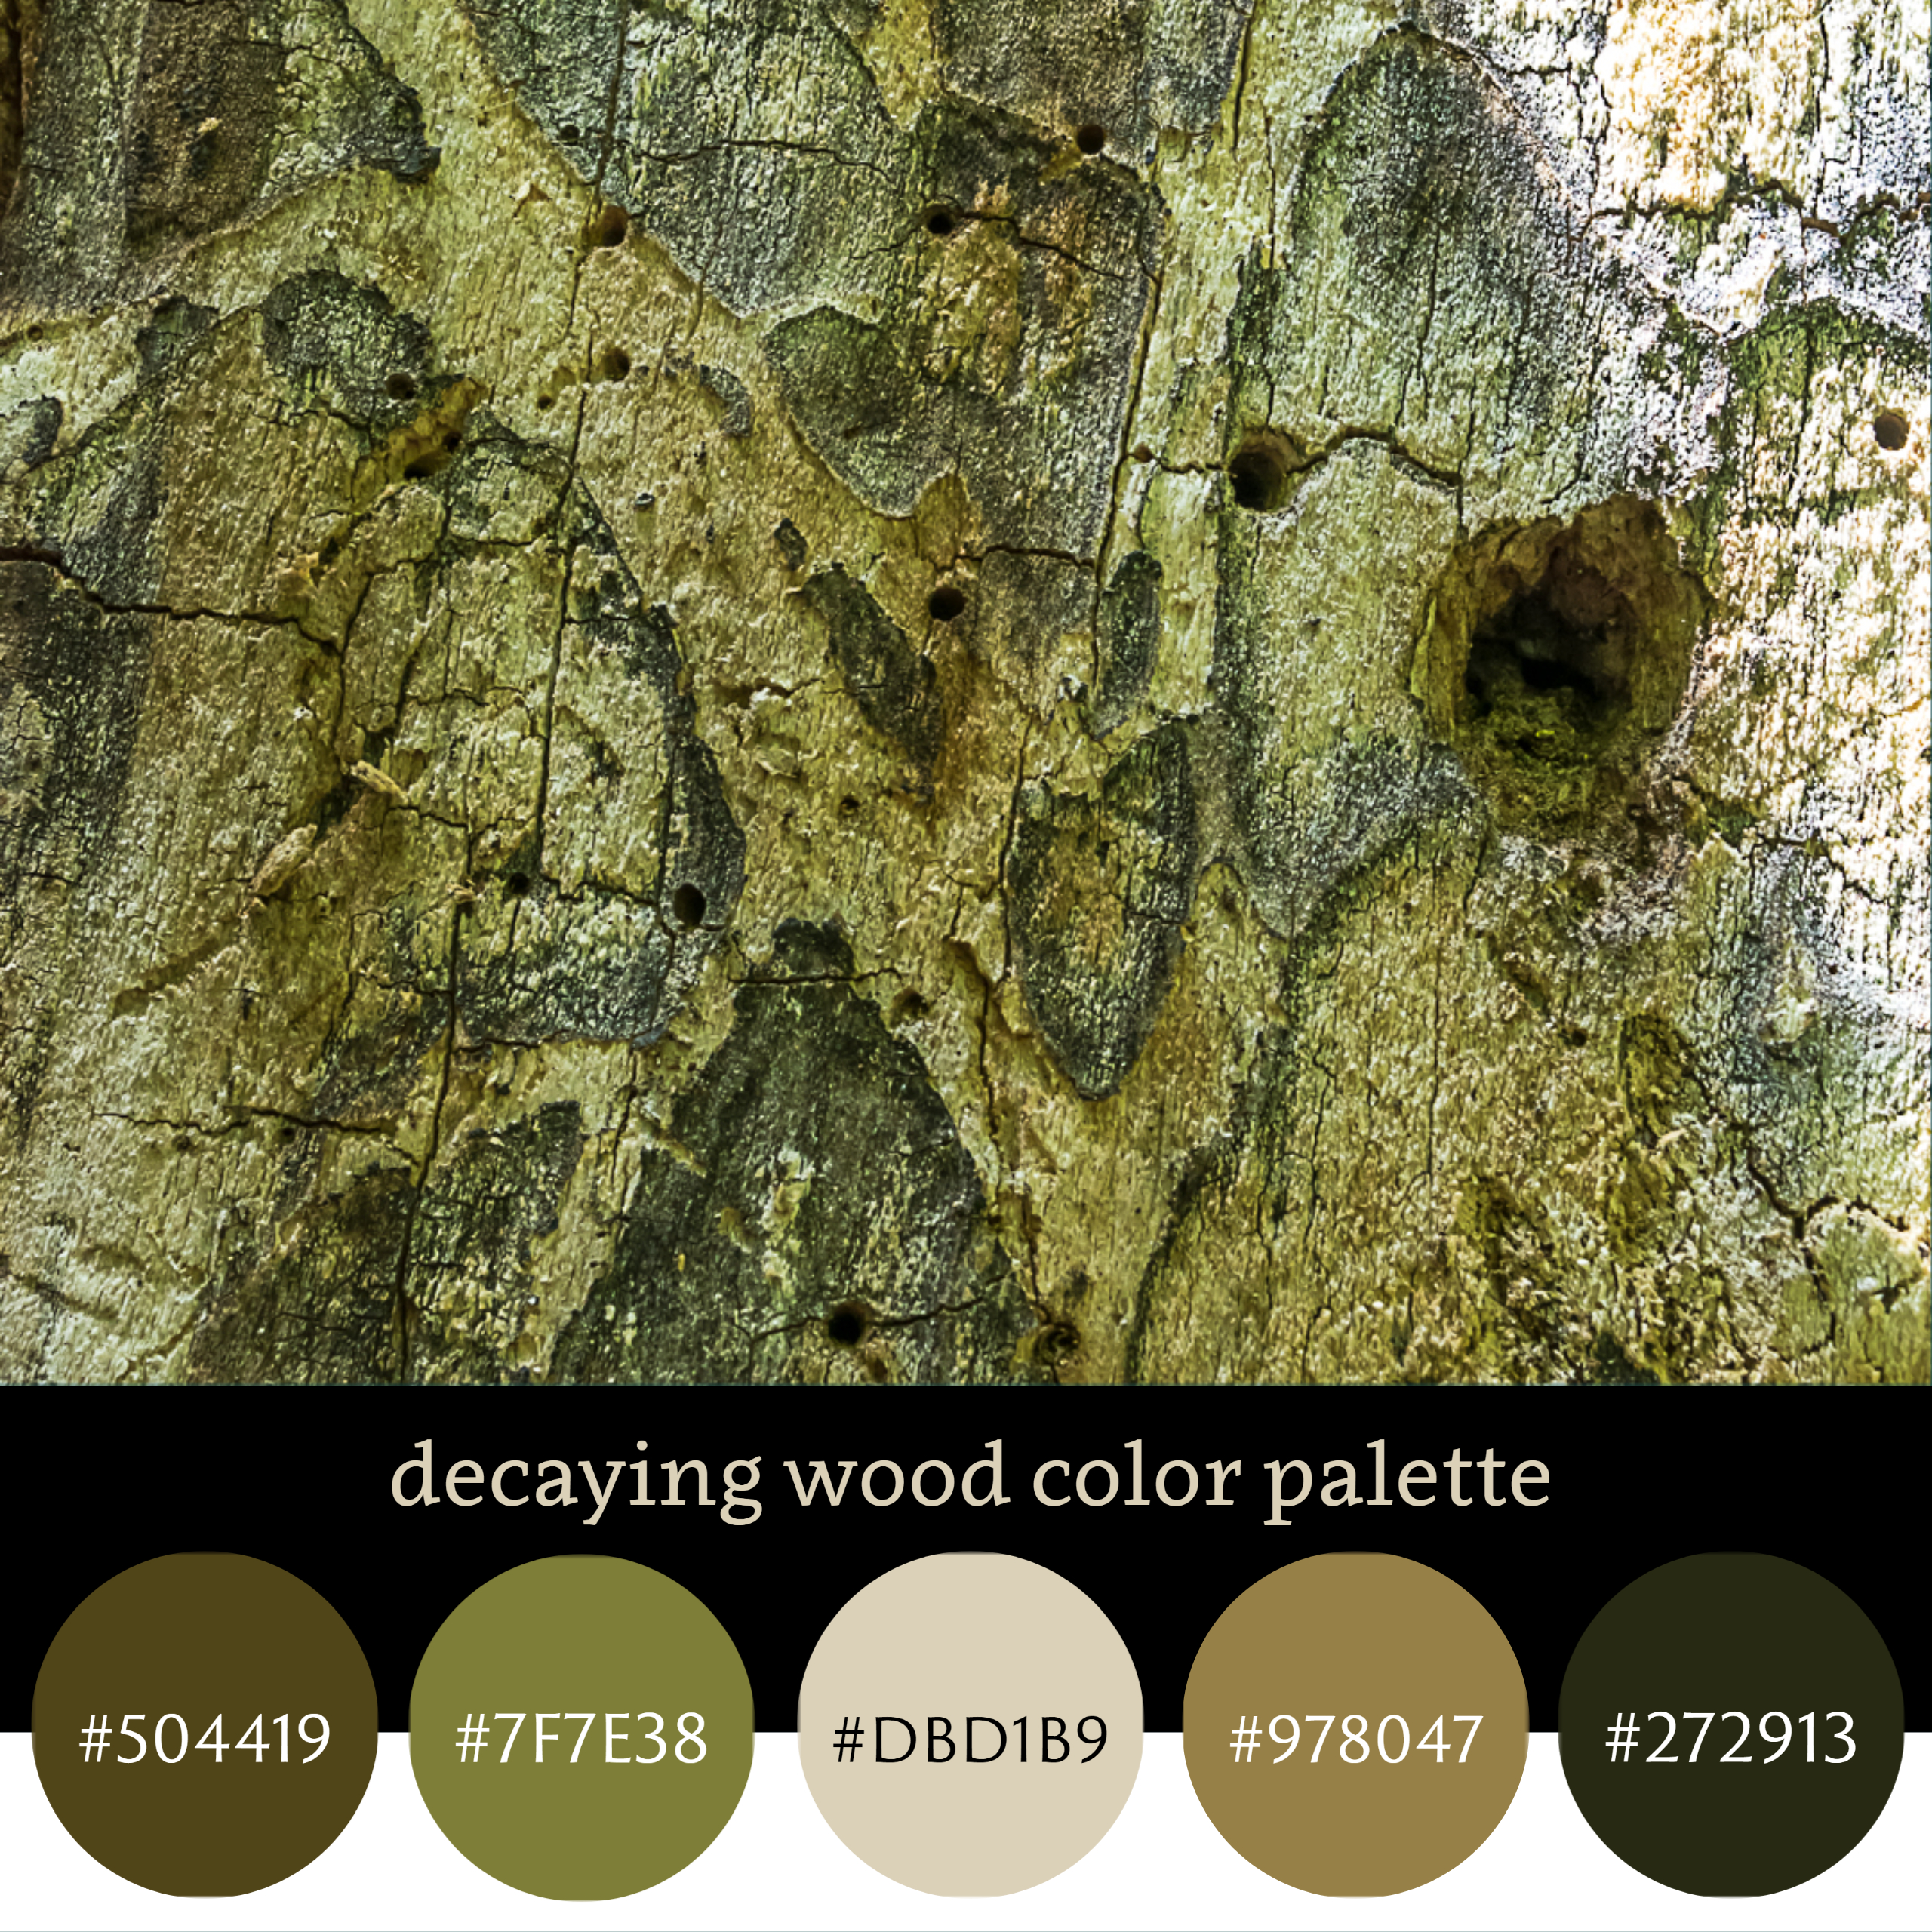 Decaying Wood Color Palette